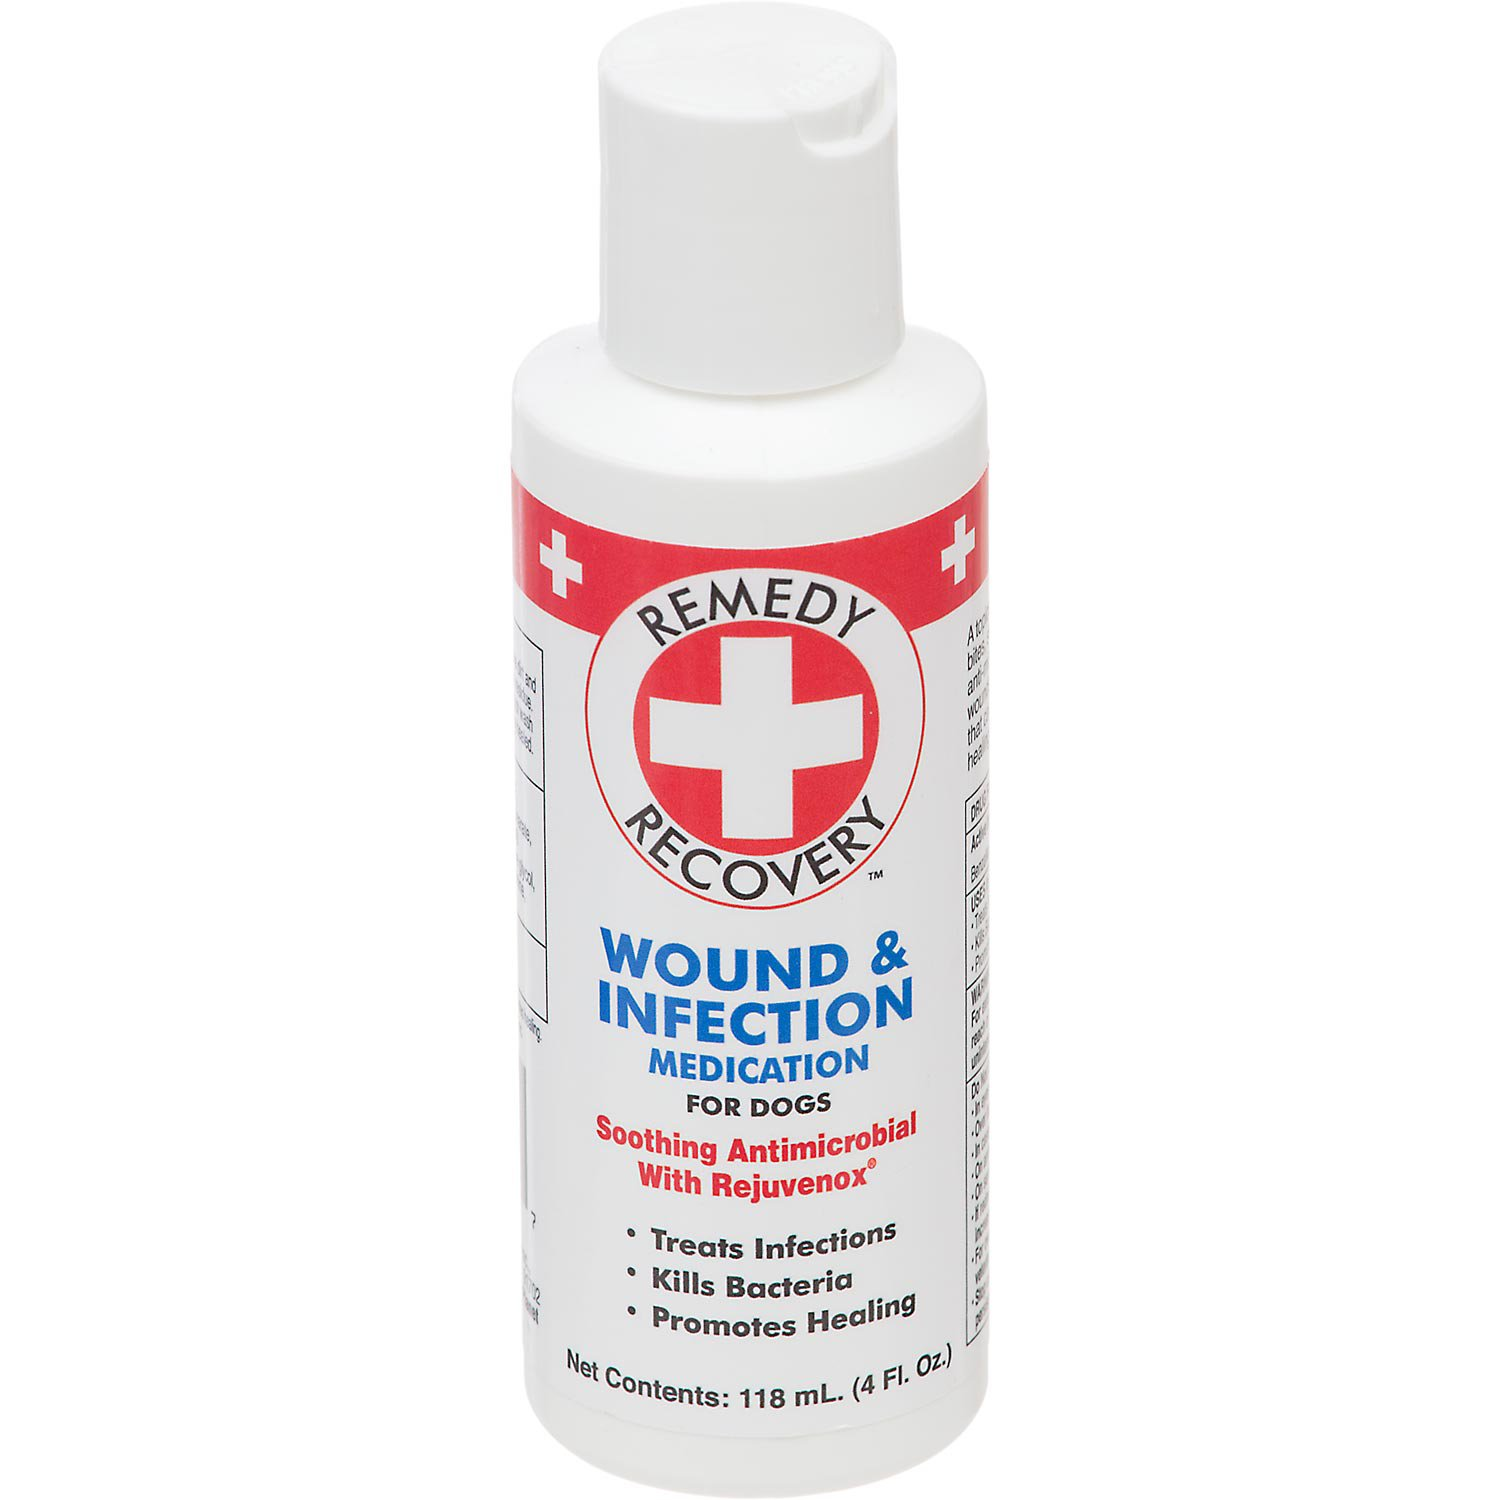 Remedy Recovery Wound Amp Infection Medication For Dogs Petco